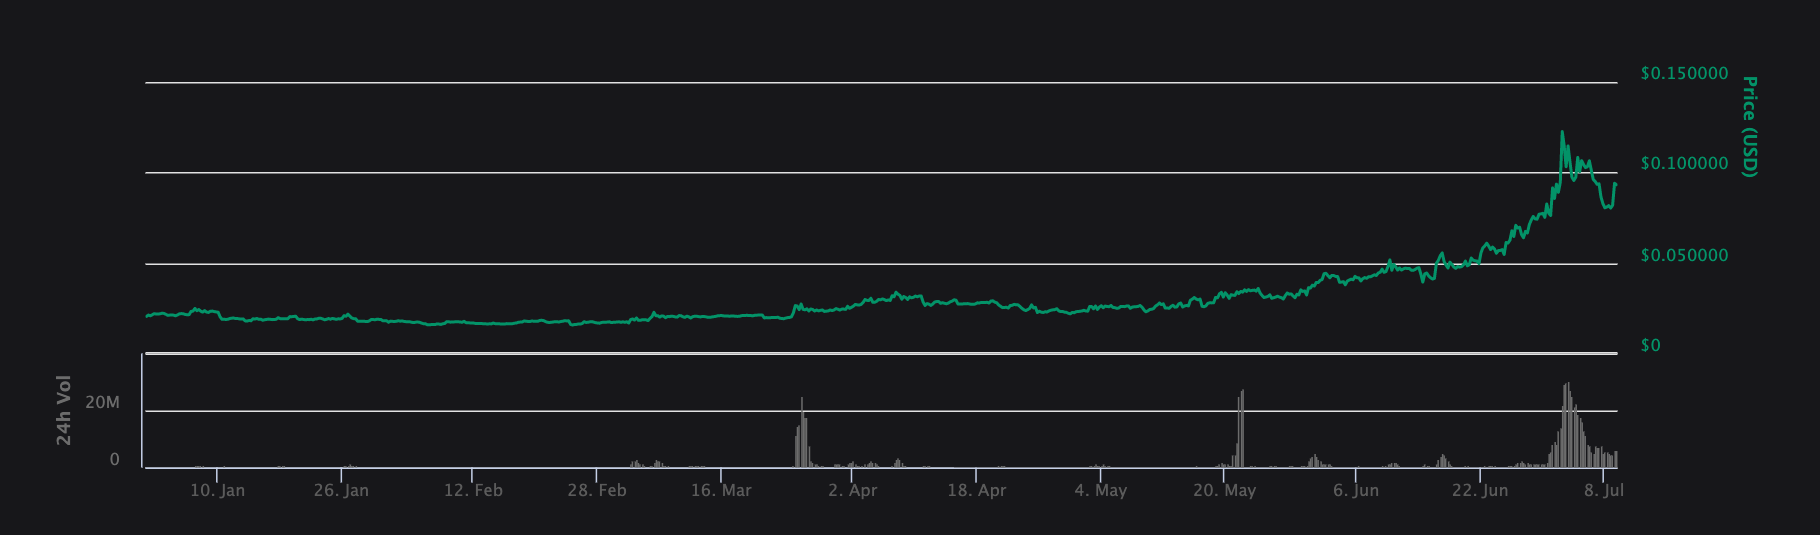 Update to our Analysis and Valuation of REN - Blocktown